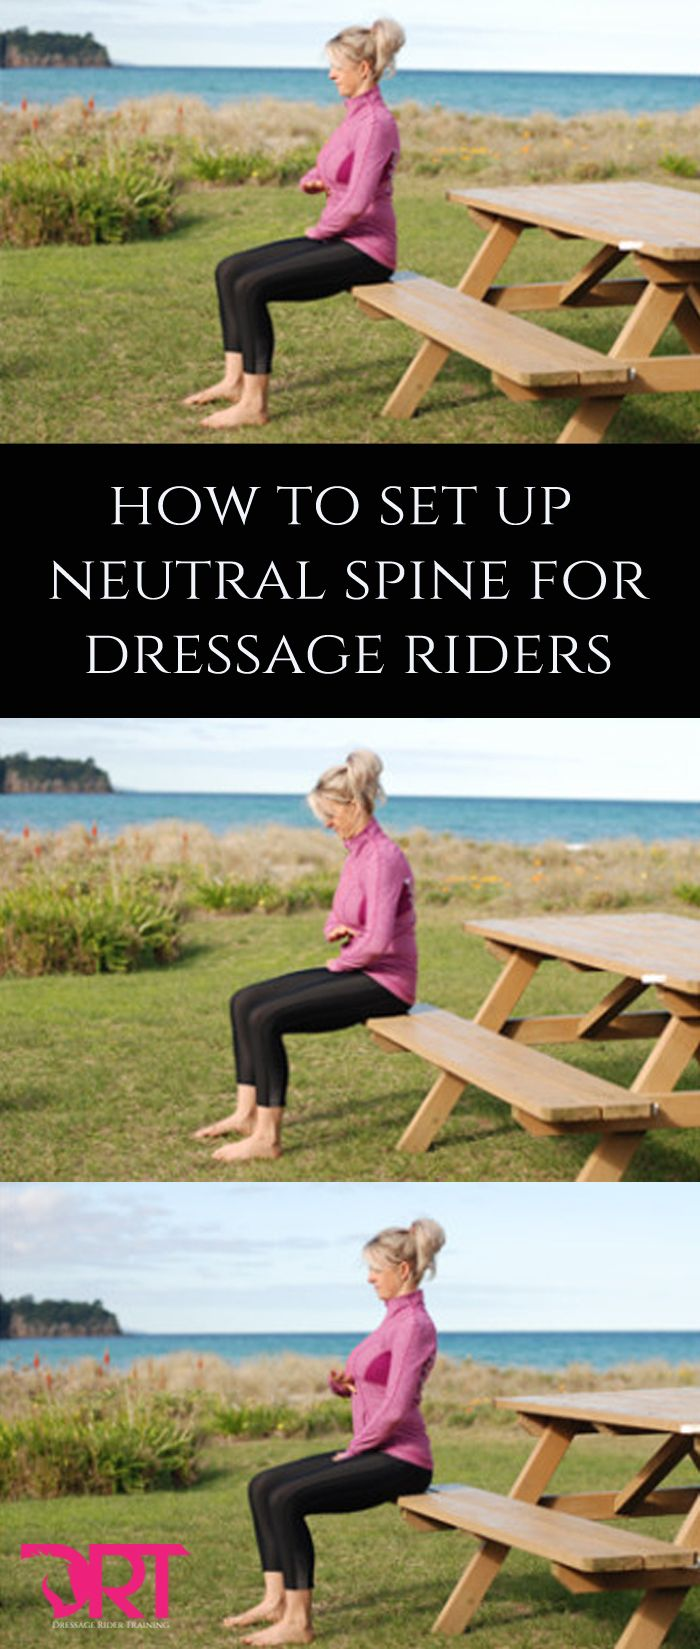 Understand what neutral spine is and how to achieve it off and on the horse for dressage